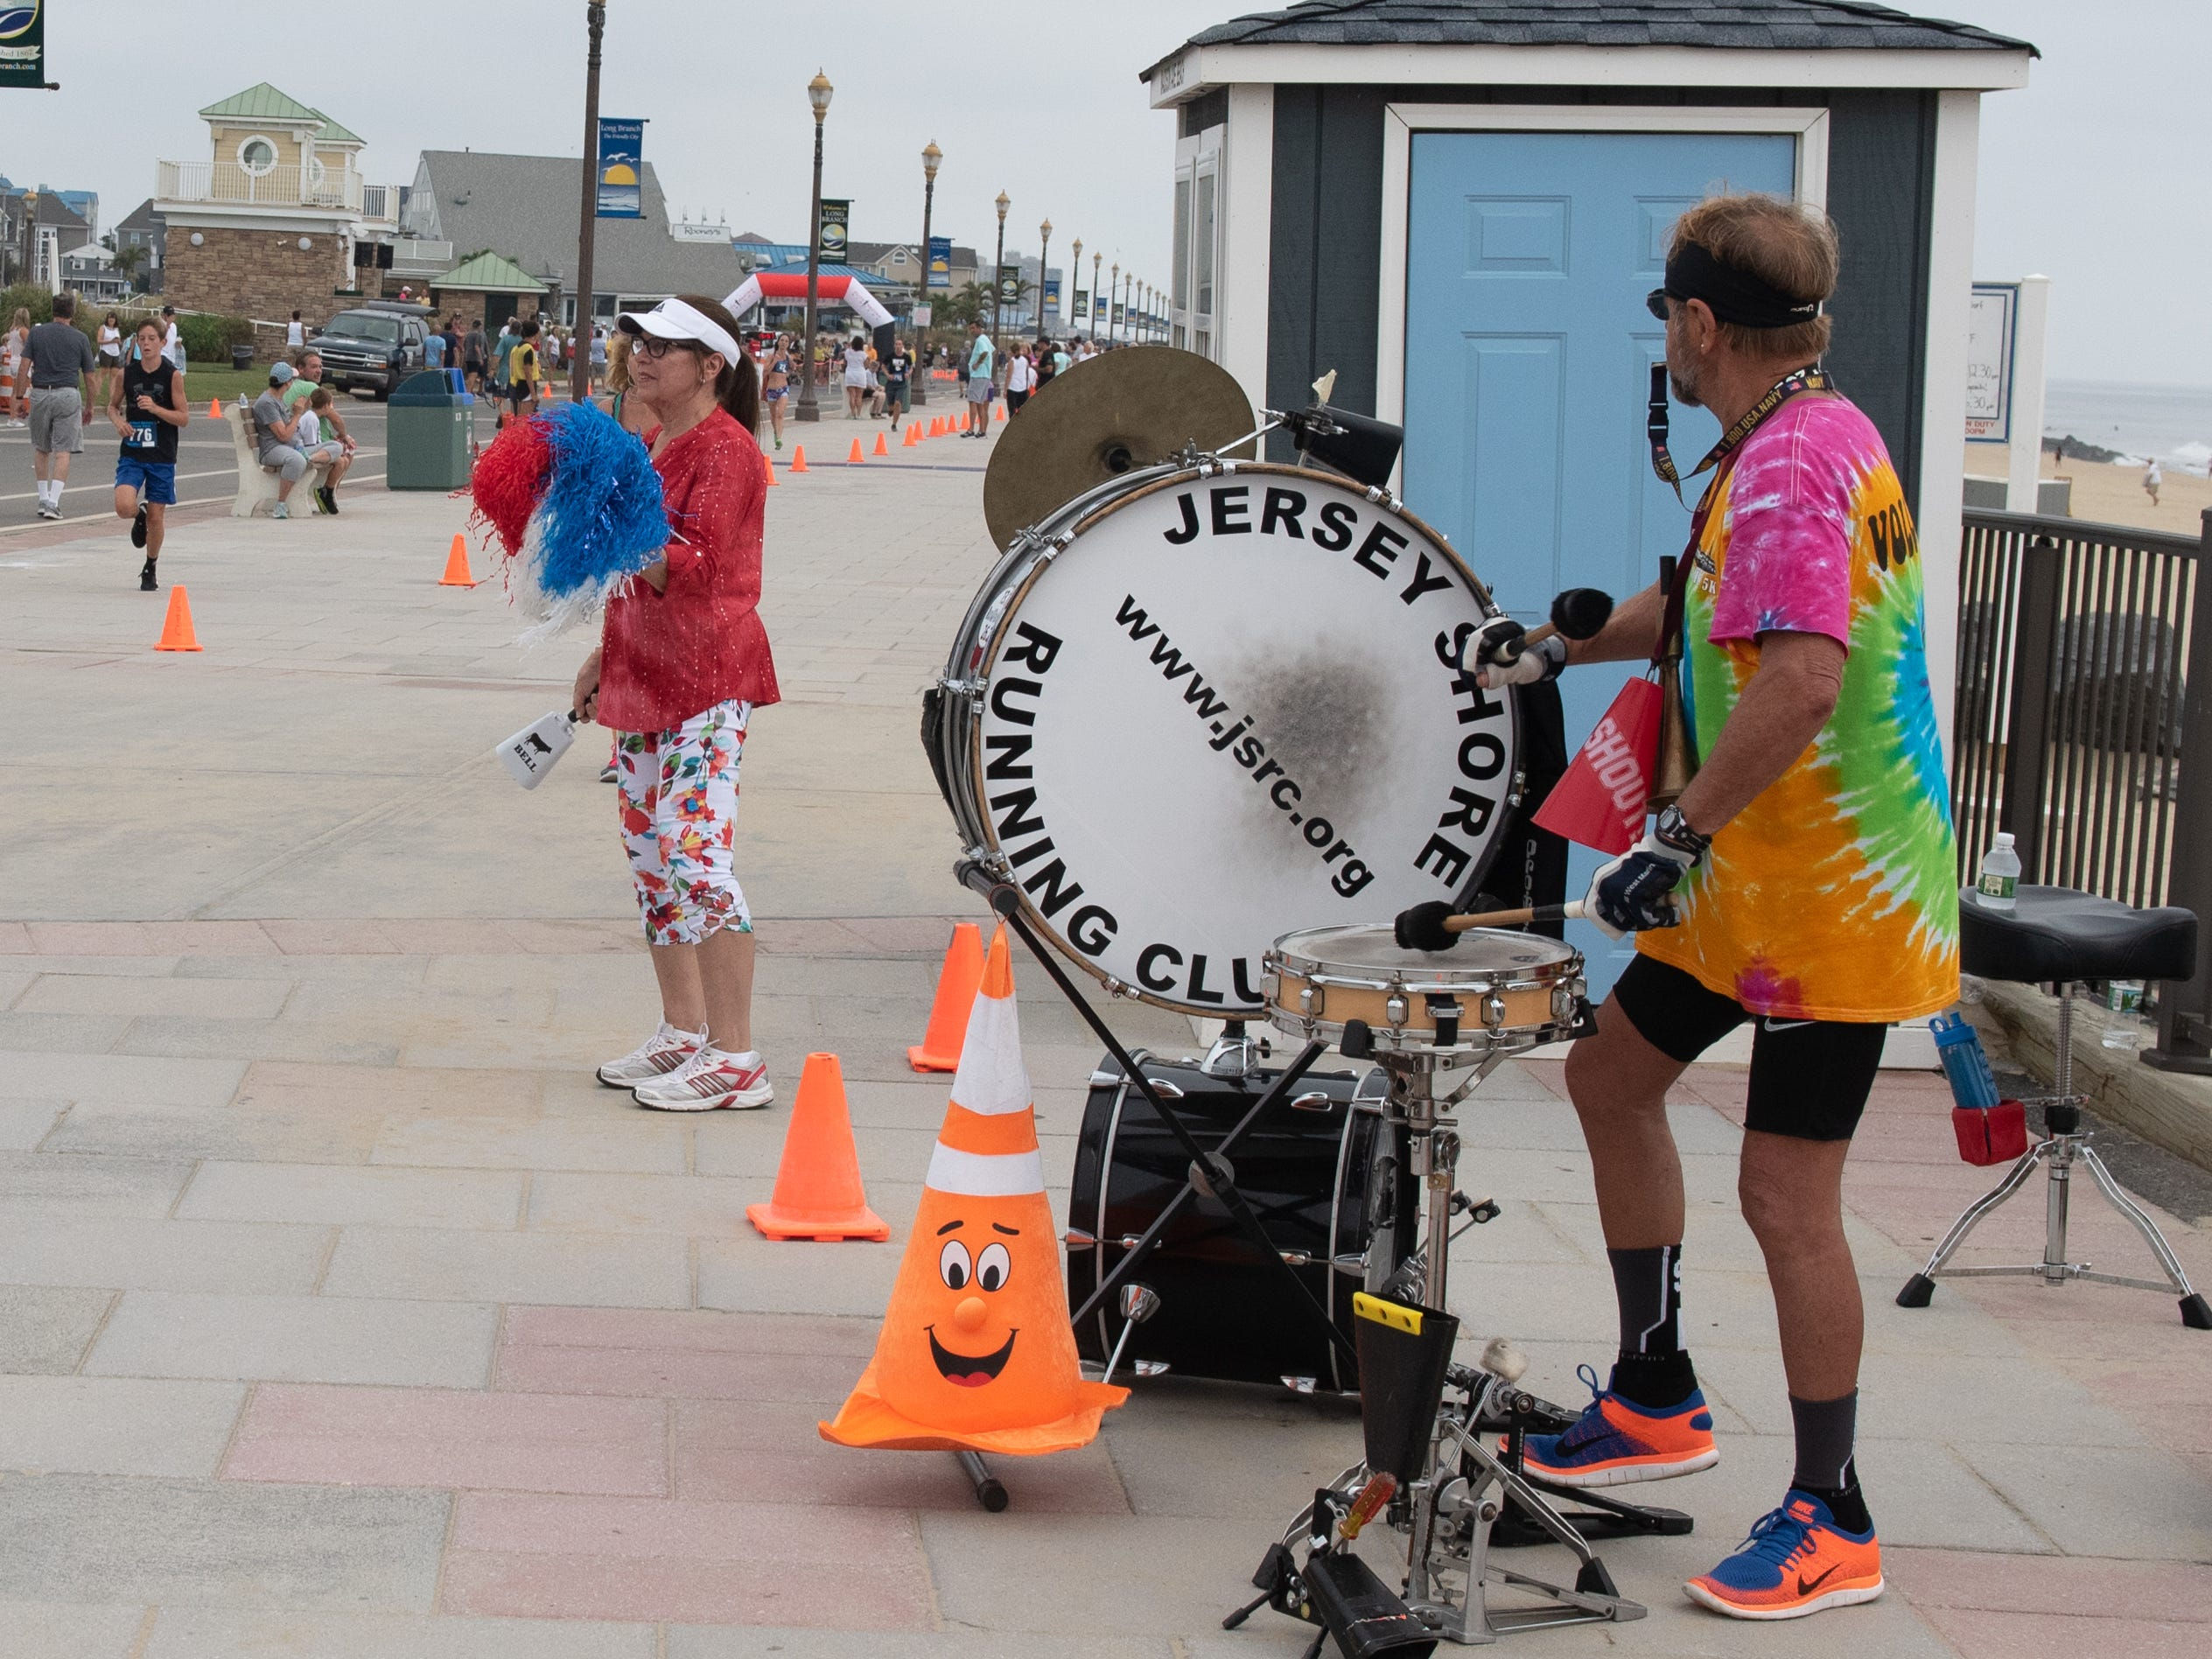 Chick (left) and Barbara Albers who act as musical cheerleaders for the runners. At left is the eventual women's winner Jamie Reuter, Leonardo, who finished at 18:08.6. The Pier House 5K run was held along the ocean in the north end of Long Branch on Monday, September 3, 2018.  / Russ DeSantis for the Asbury Park Press